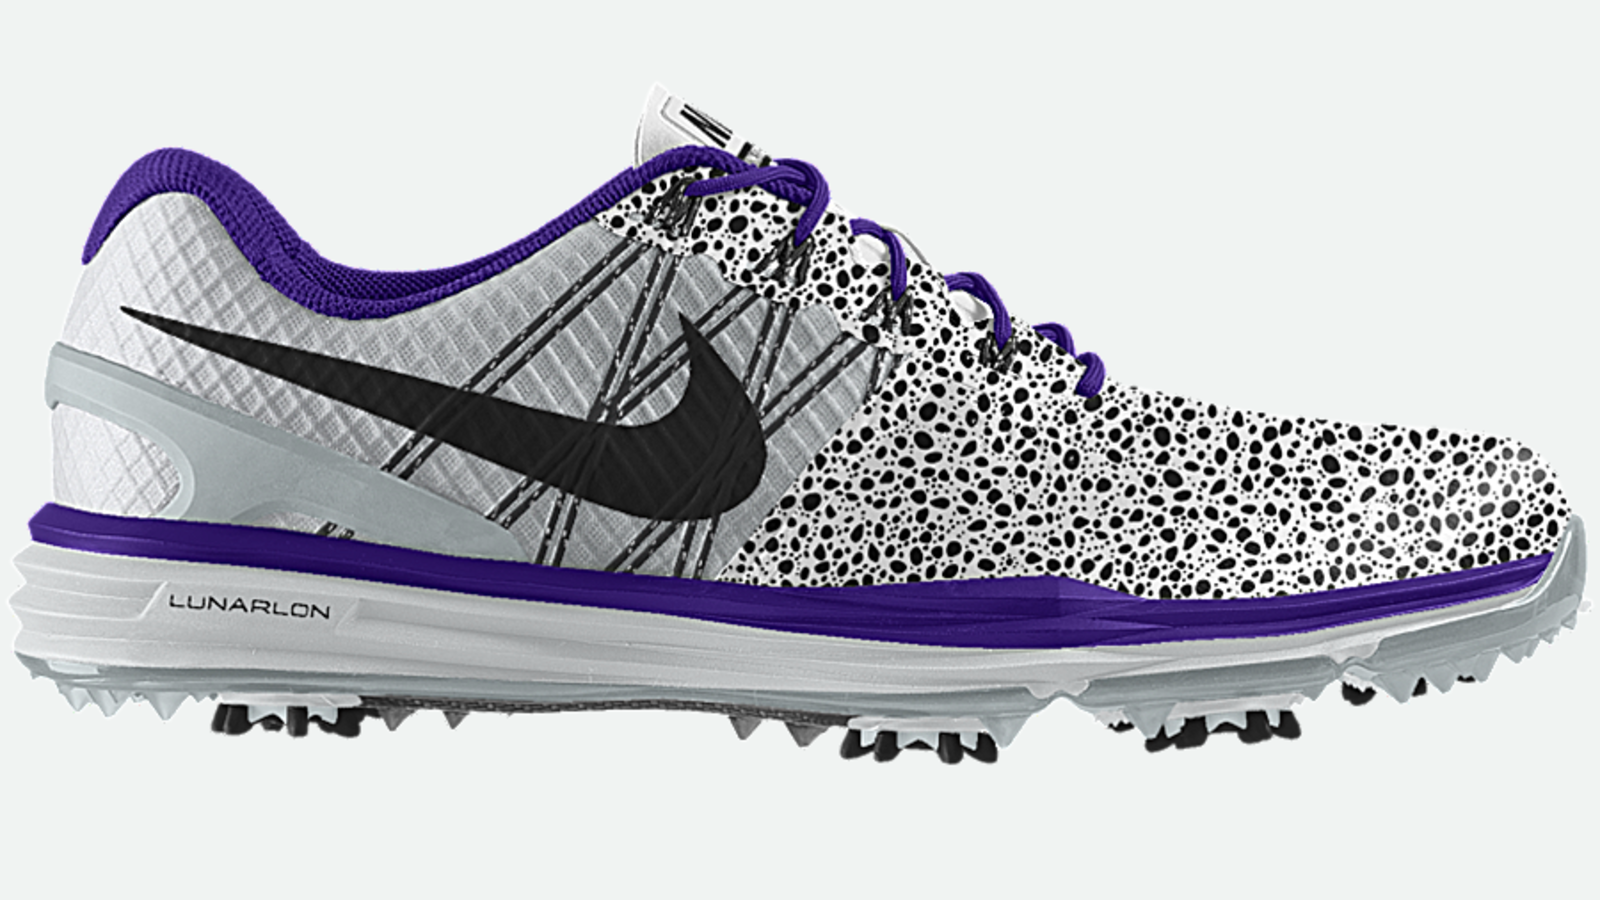 competitive price fca4c 9f251 ... Nike Lunar Control 4 iD Golf Shoe,  Rory McIlroy Laces Up for Kids  Impacted by Cancer at the Irish Open .